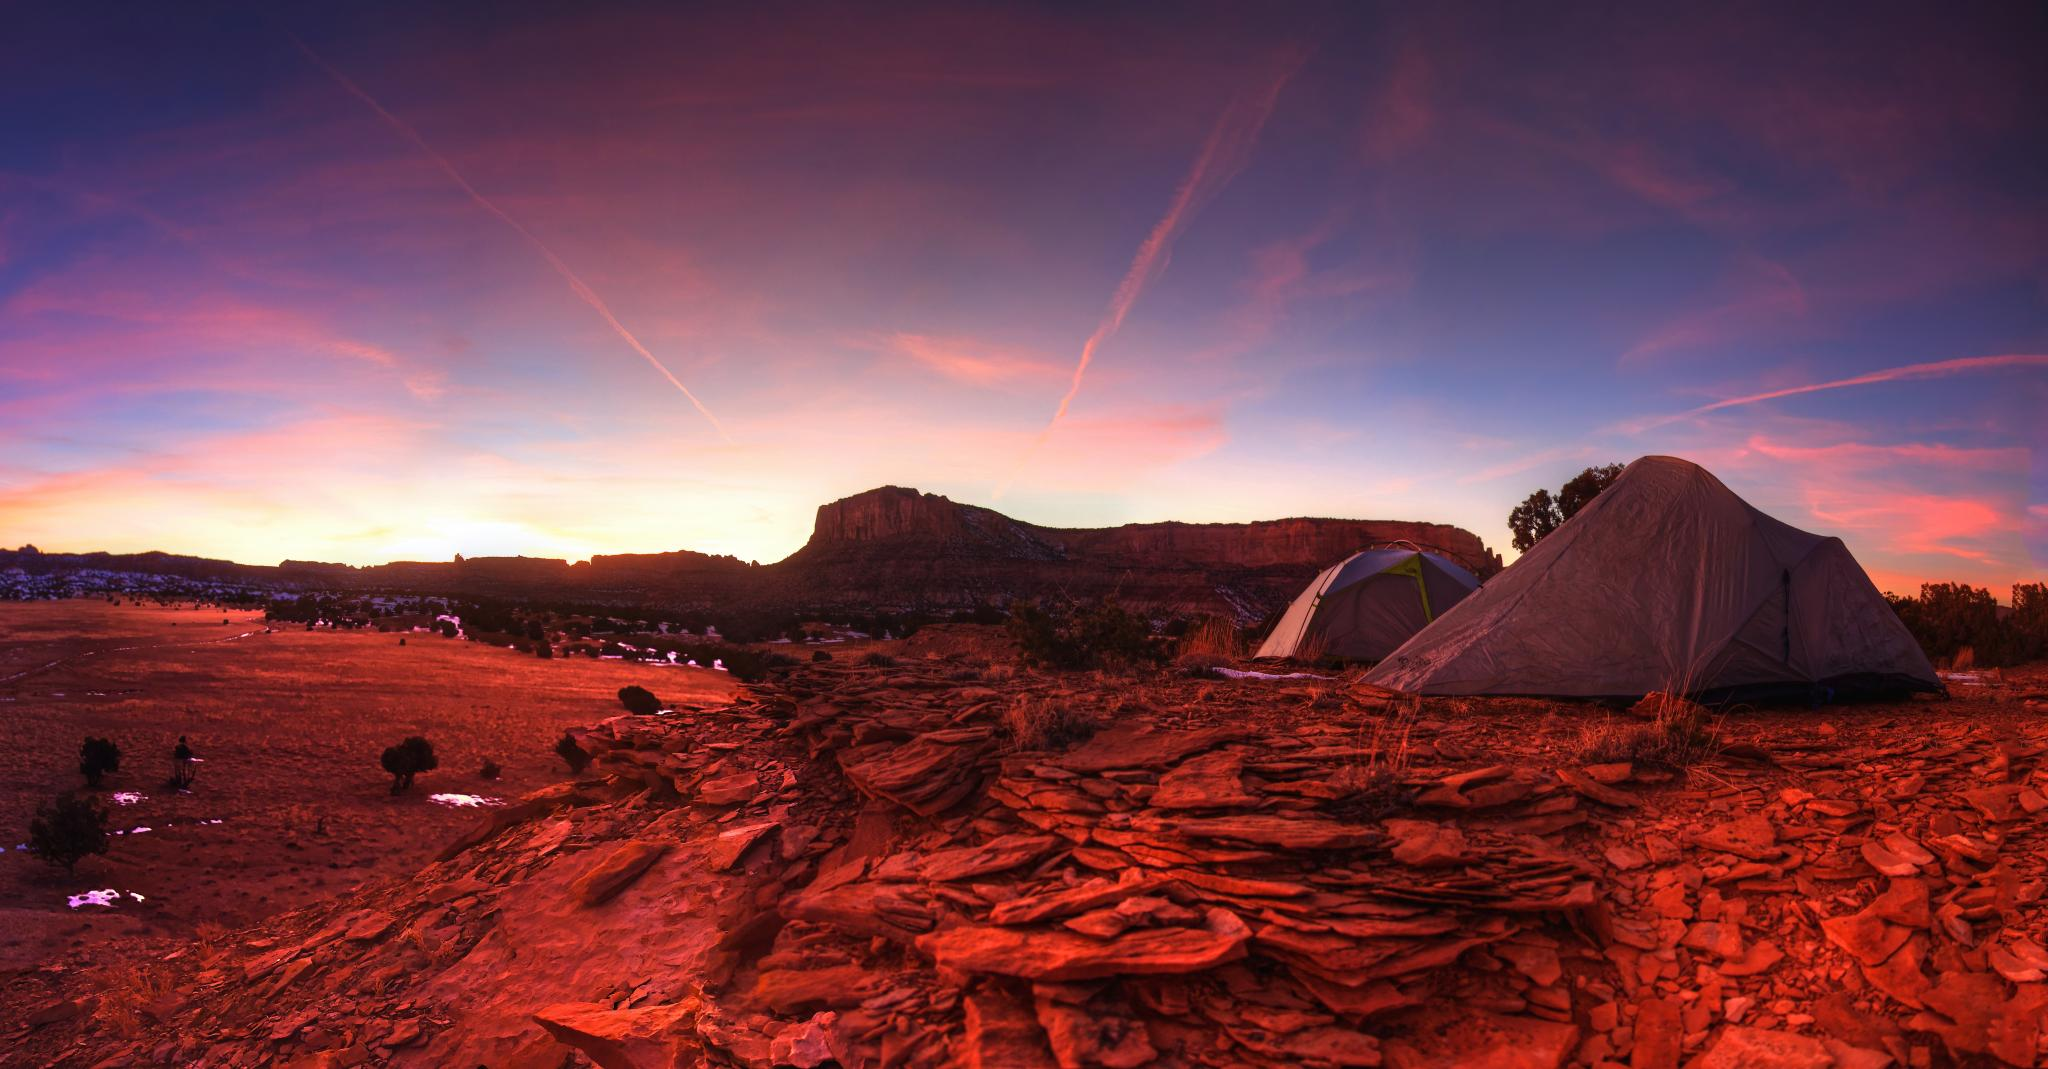 Tent camping at sunset in Utah